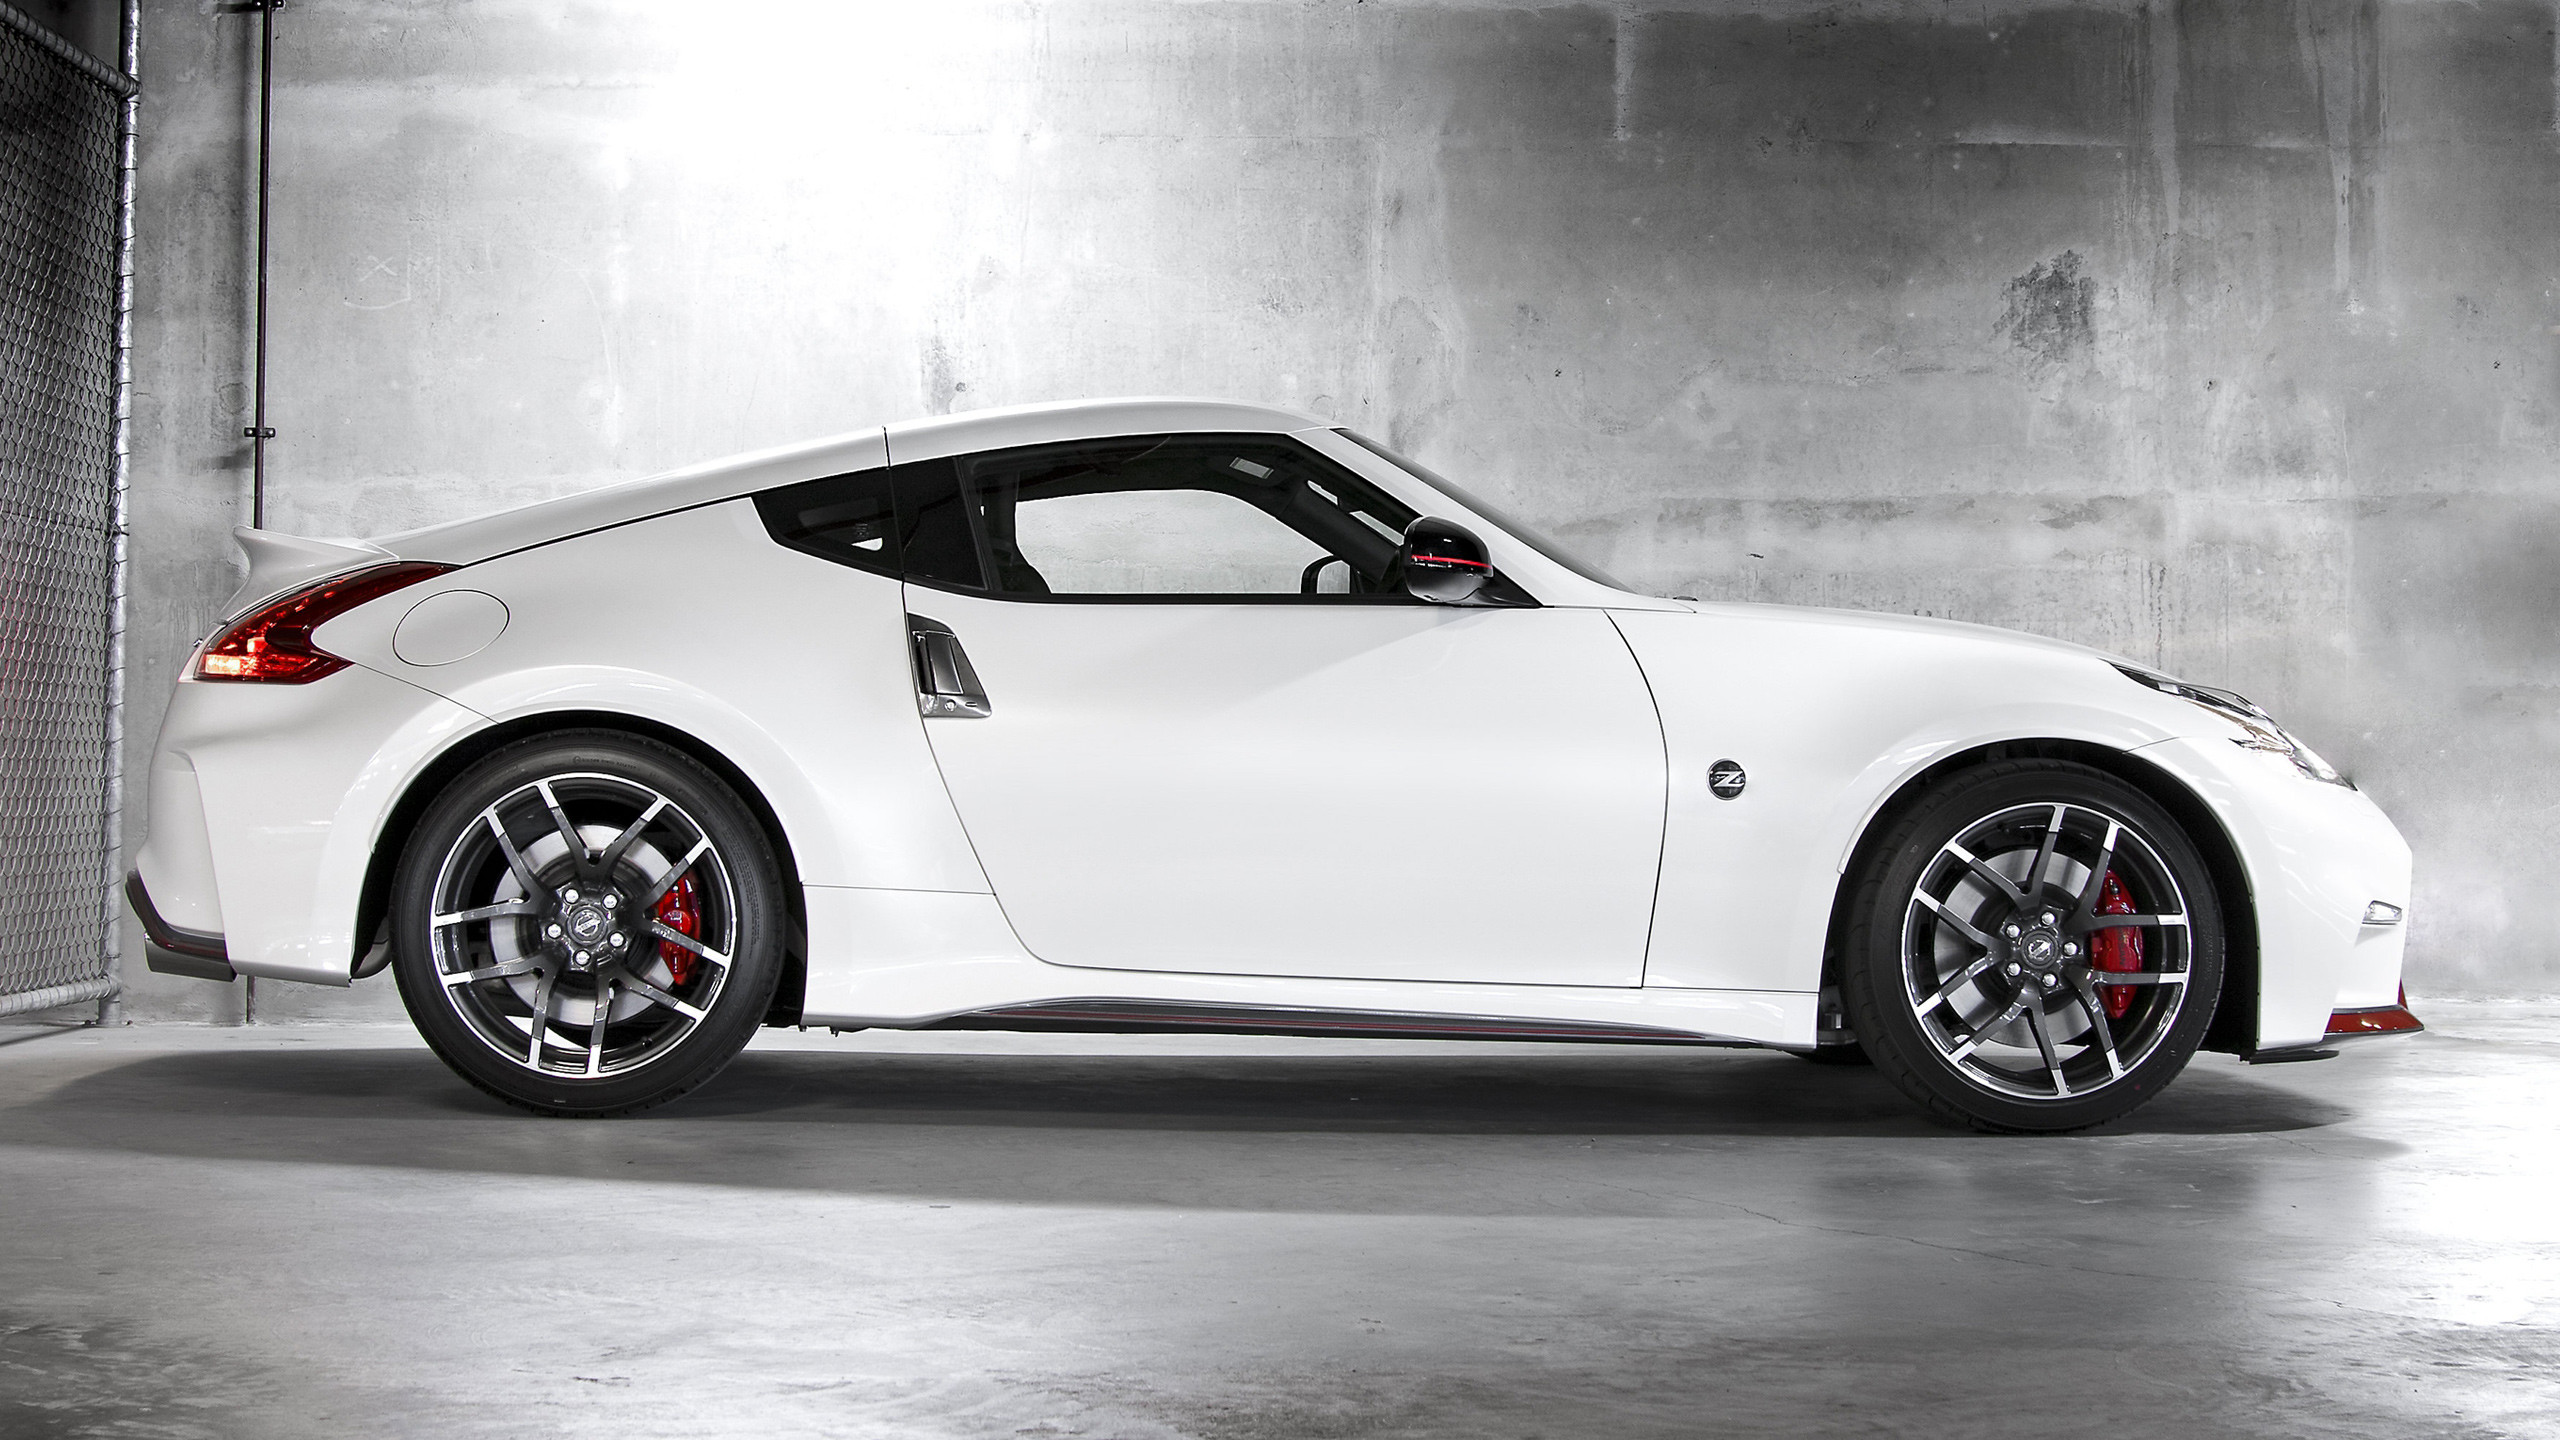 Res: 2560x1440, 2018 Nissan 370Z Nismo 2